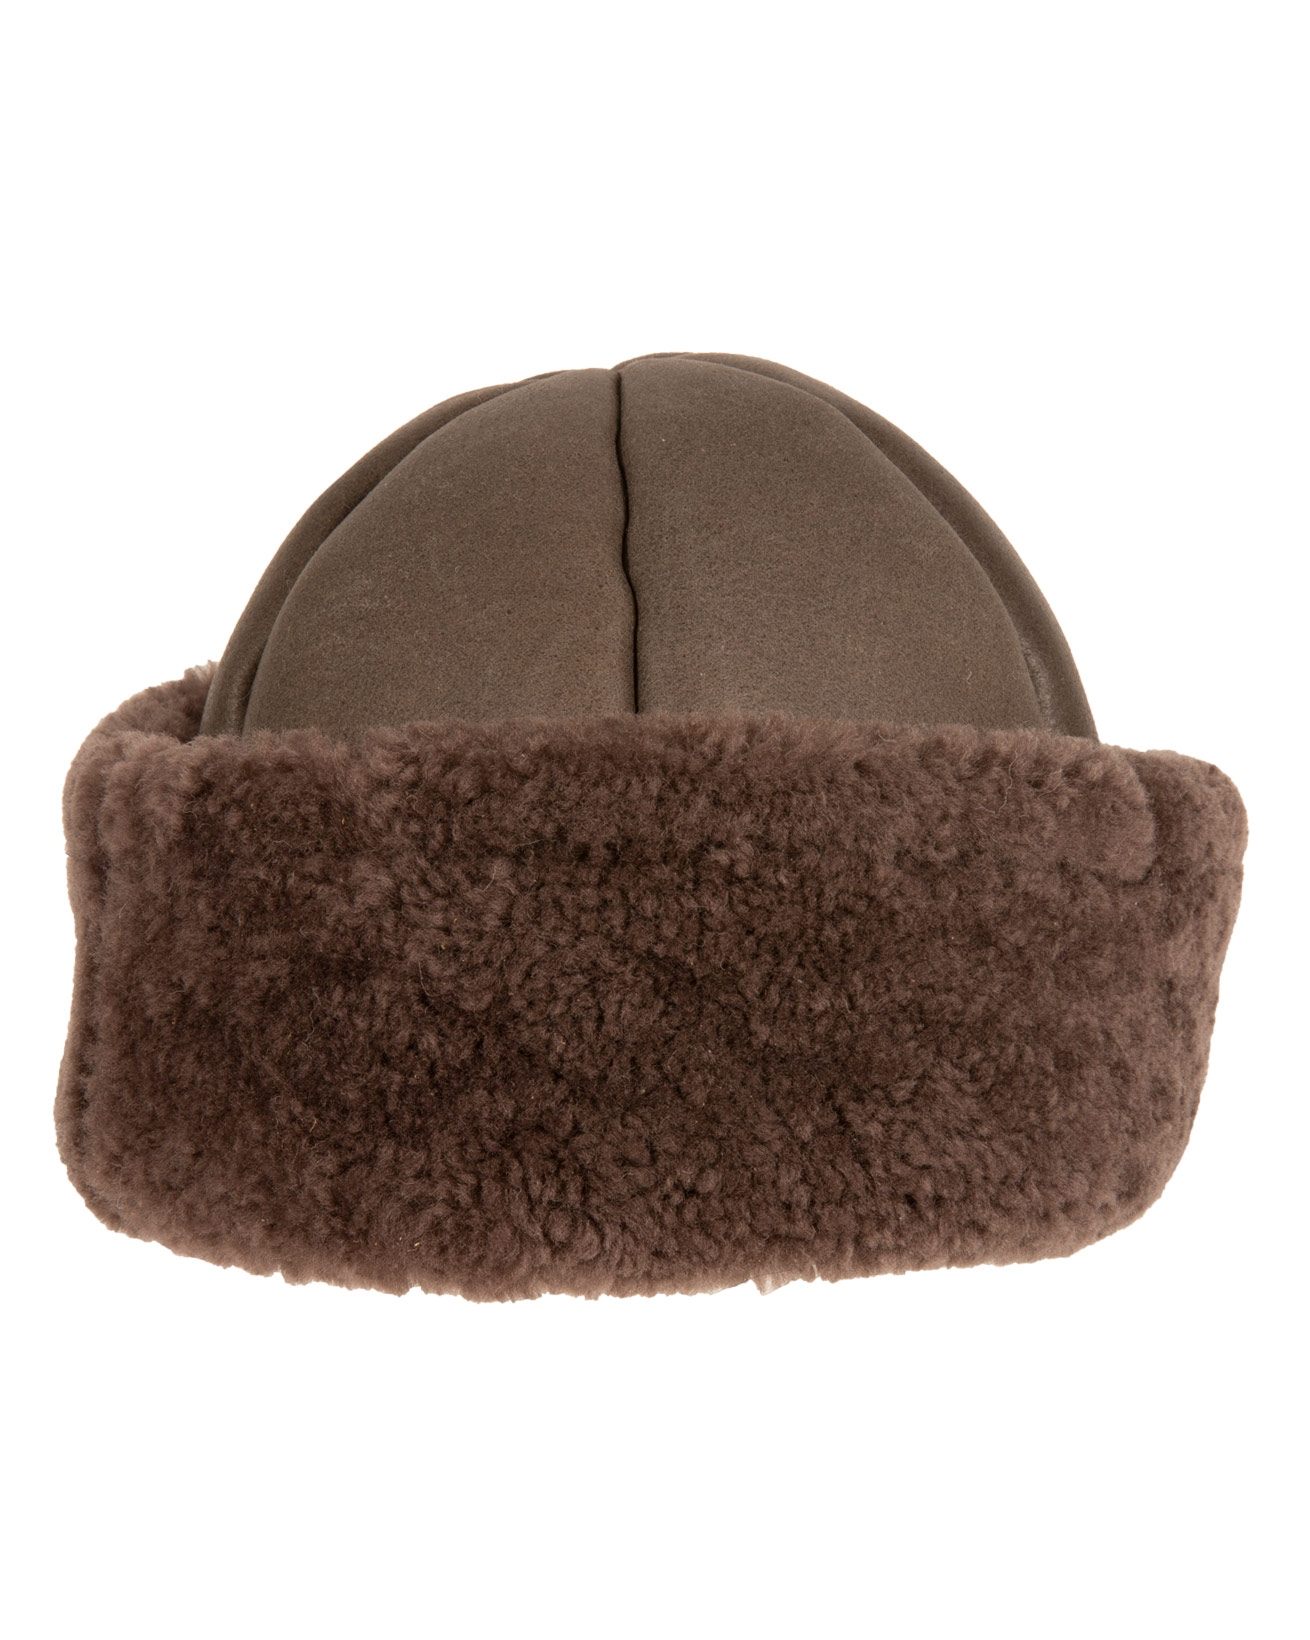 7314-ladies sheepskin beanie-vole.jpg